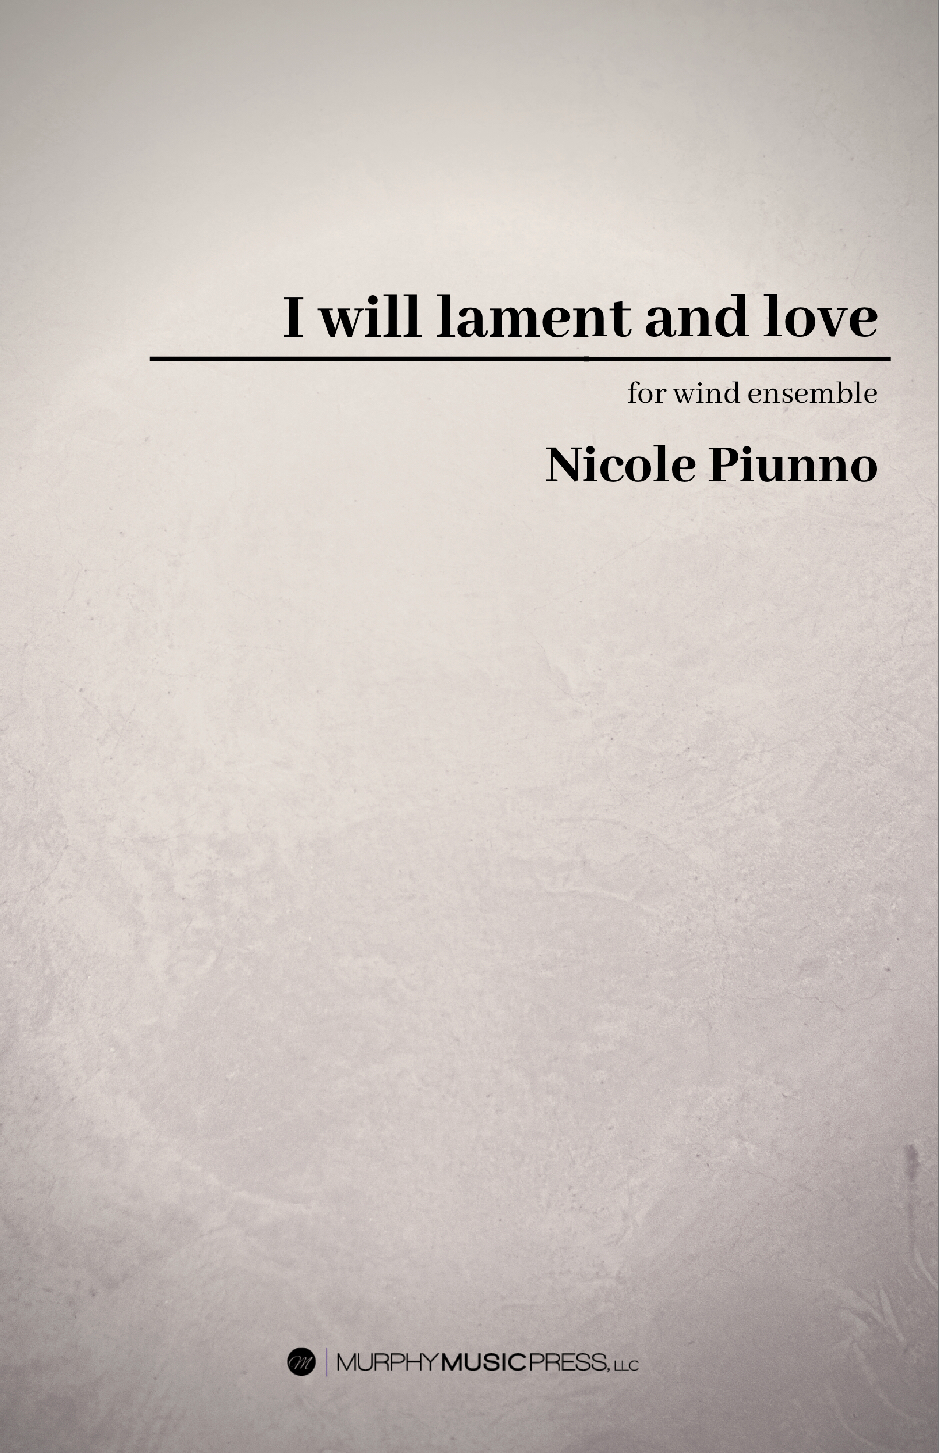 I Will Lament And Love (Score Only) by Nicole Piunno